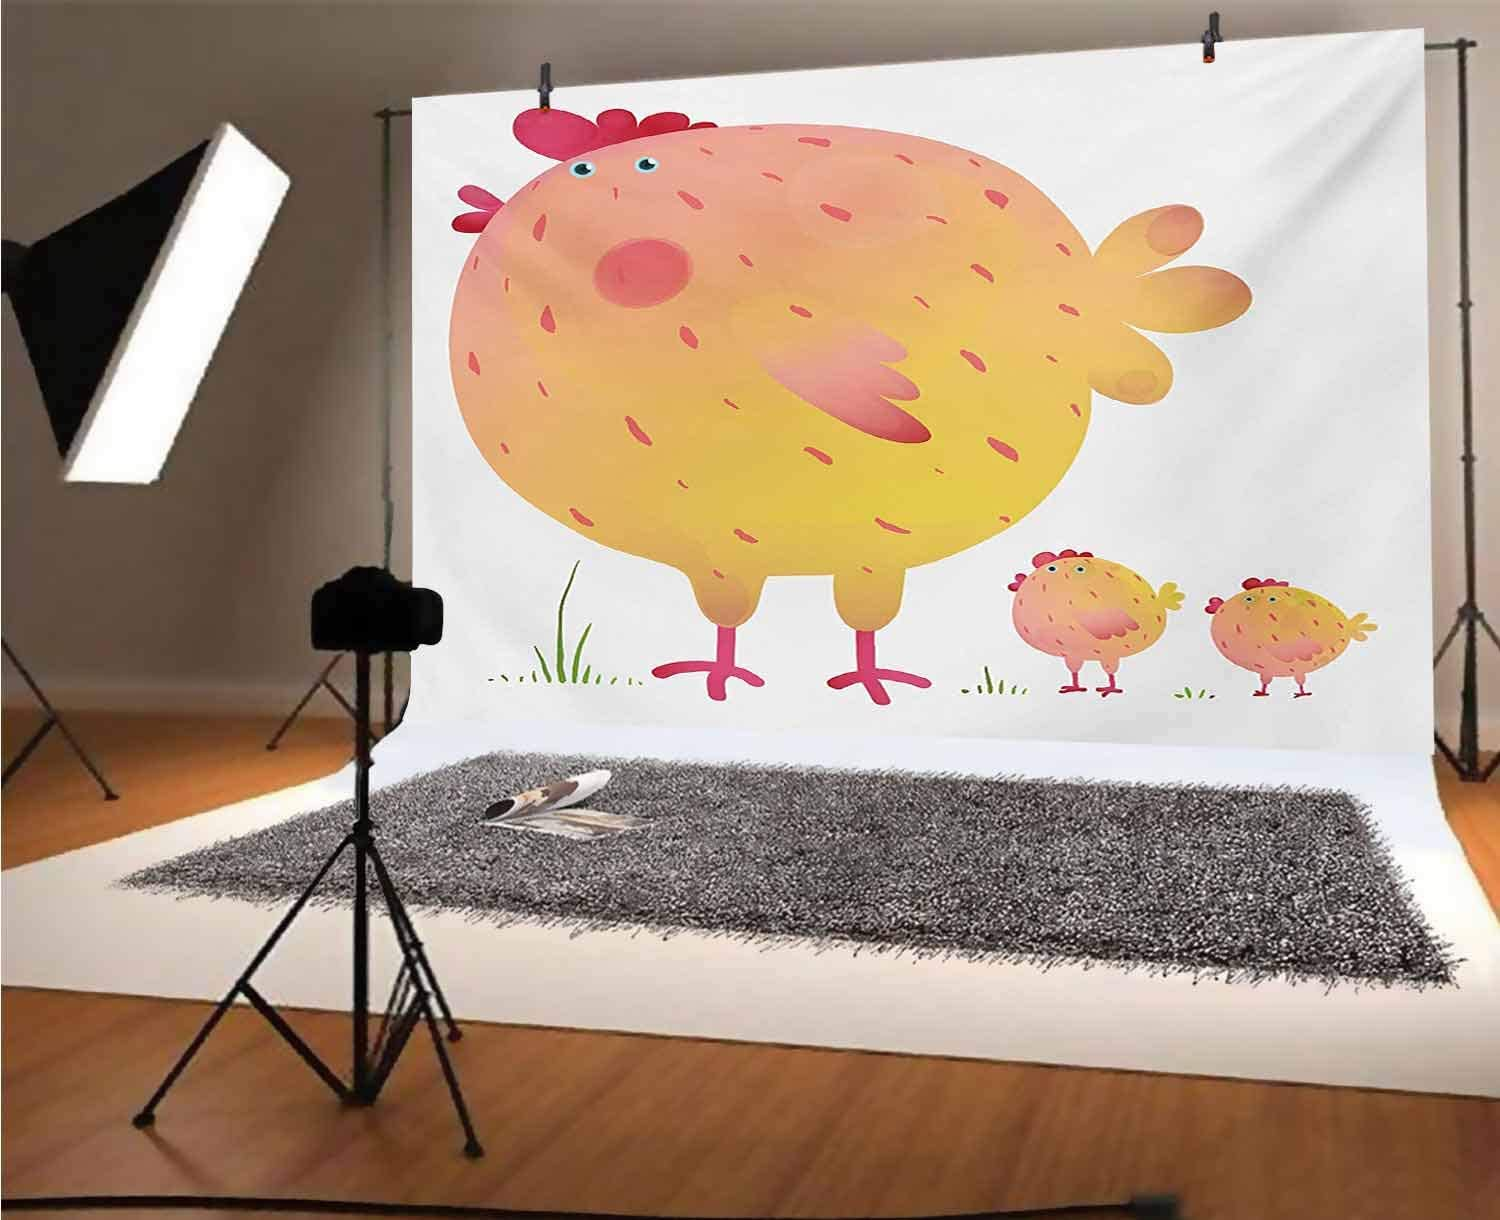 Chicken 8x6 FT Vinyl Photo Backdrops,Mother Hen and Chicks Farm Animals Agriculture Family Theme Background for Selfie Birthday Party Pictures Photo Booth Shoot